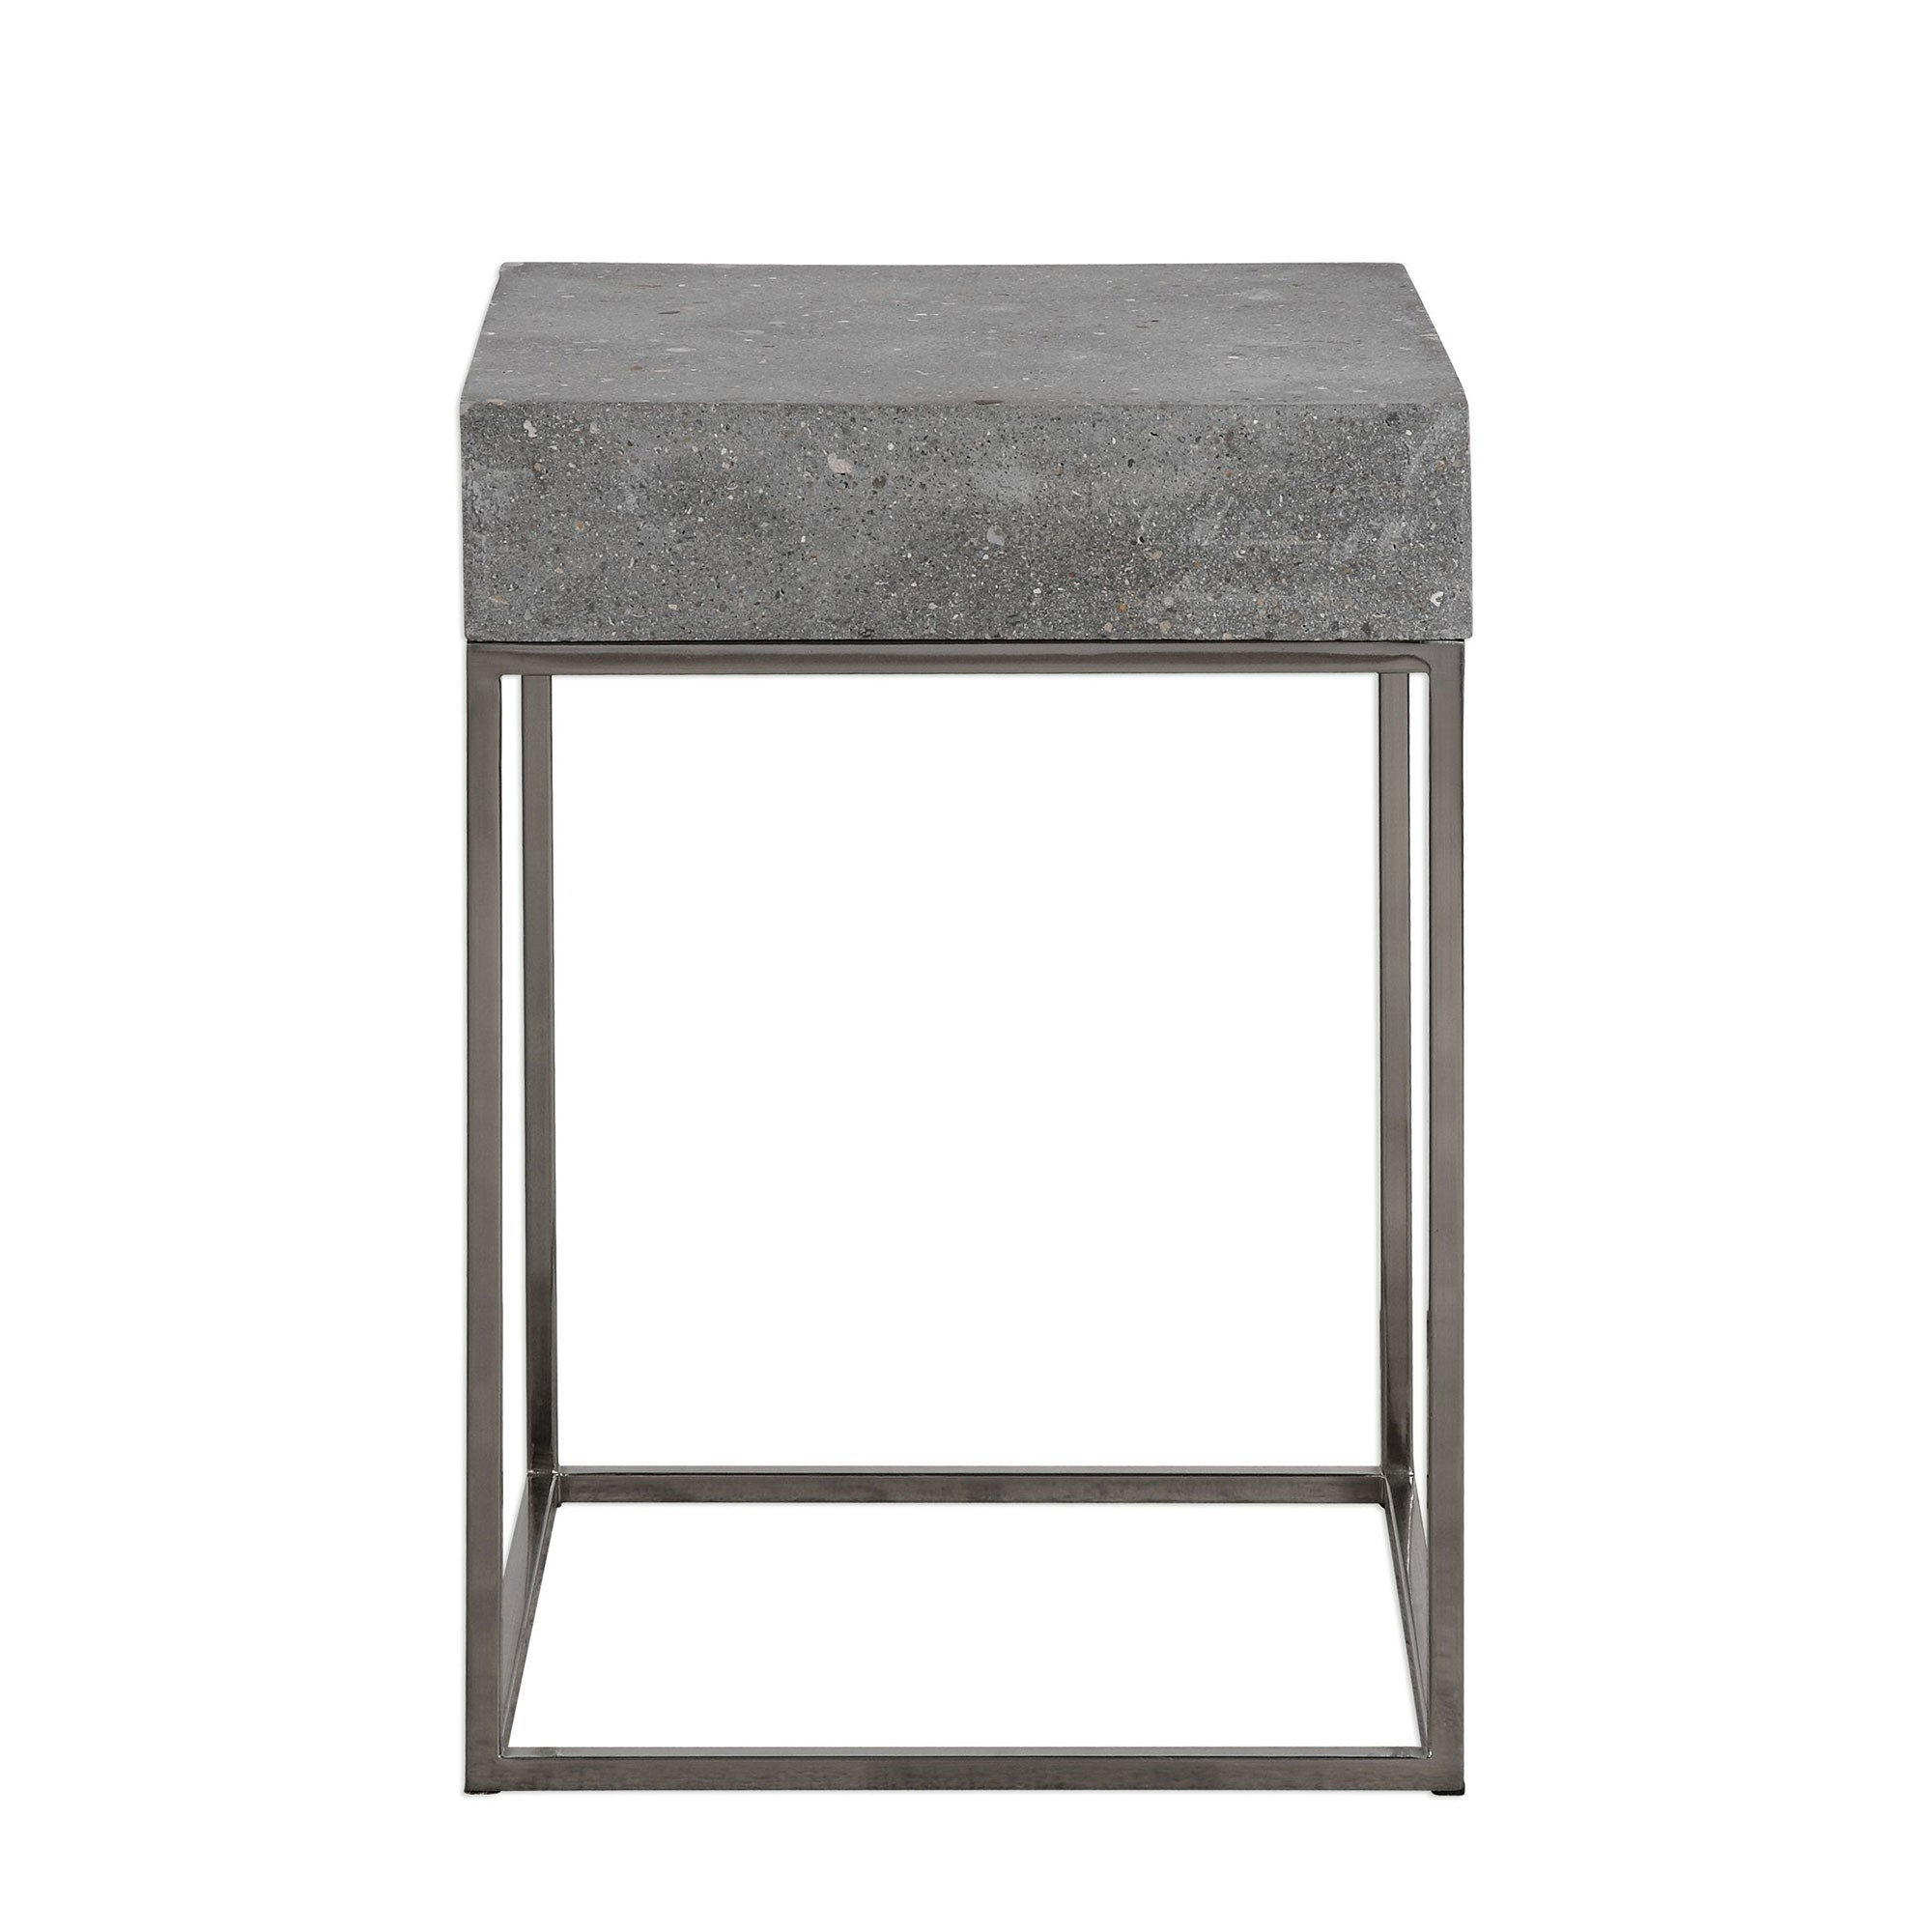 jude concrete accent table industrial steel uttermost red round west elm marble sofa reviews acrylic side tables living room lucite cube with wine rack underneath nesting end